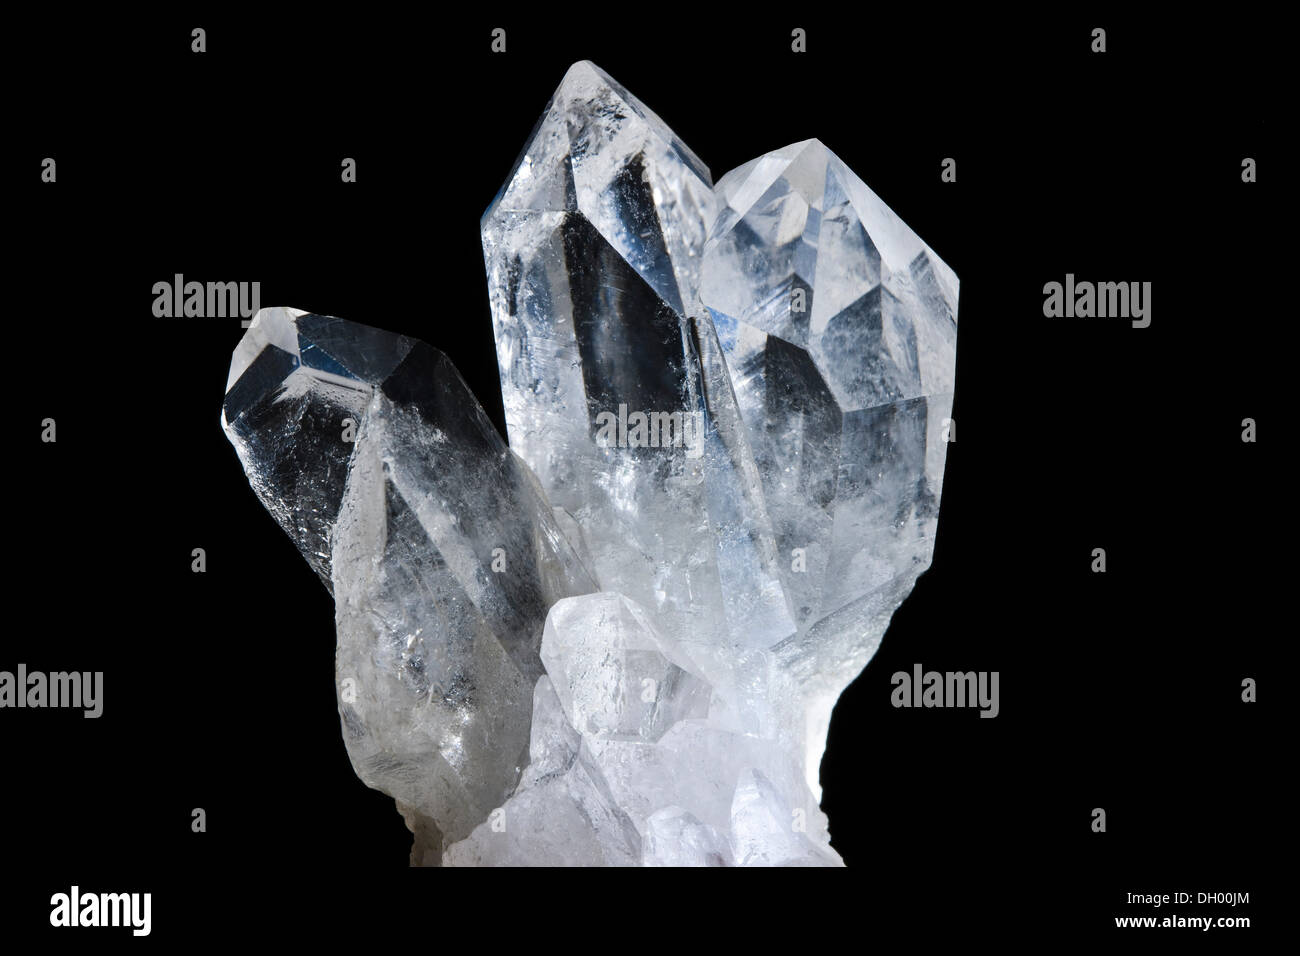 Rock crystal, quartz, 4cm high and 4cm wide - Stock Image